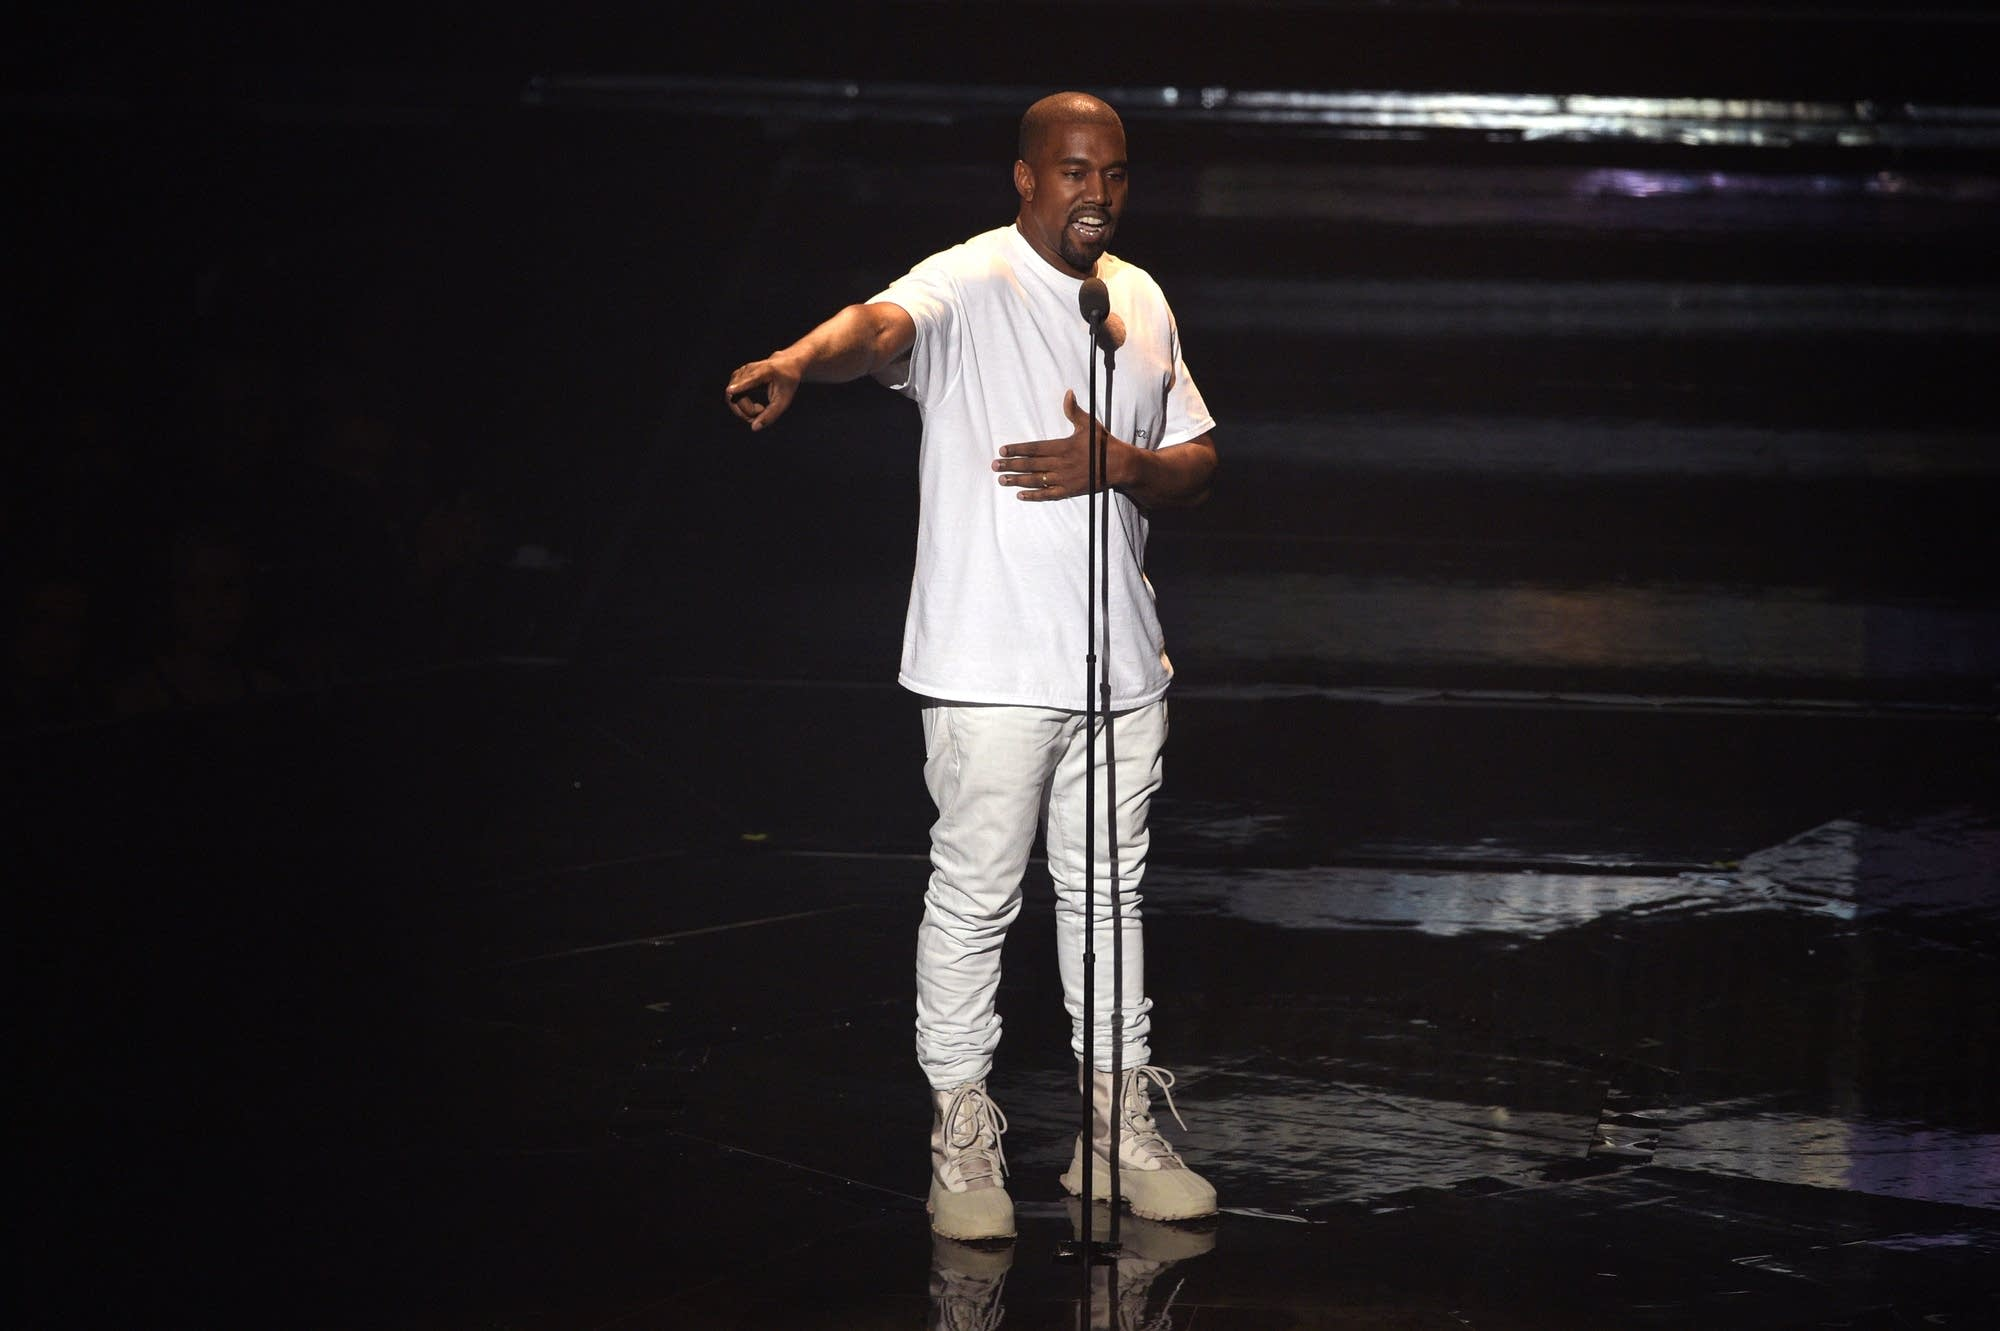 Kanye West performs during the 2016 MTV Video Music Awards.